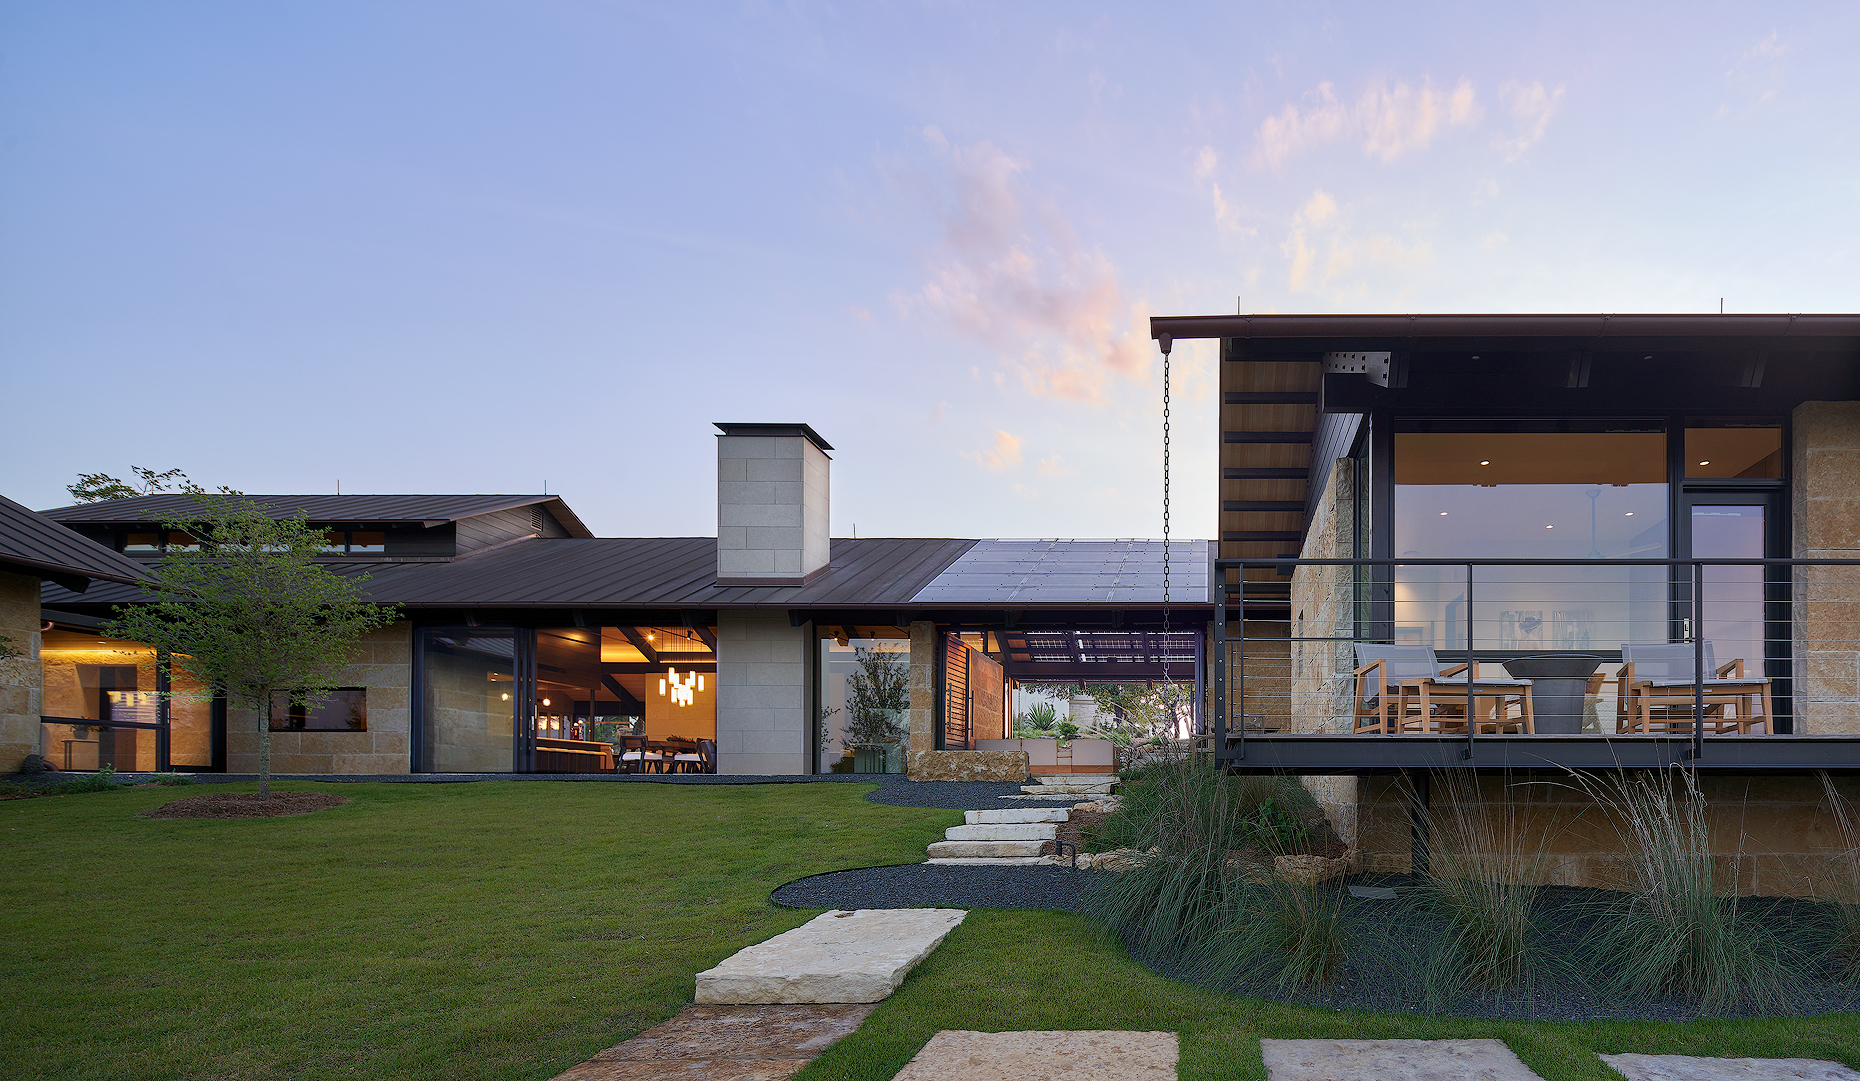 Hill country residence Lake Flato Dror Baldinger